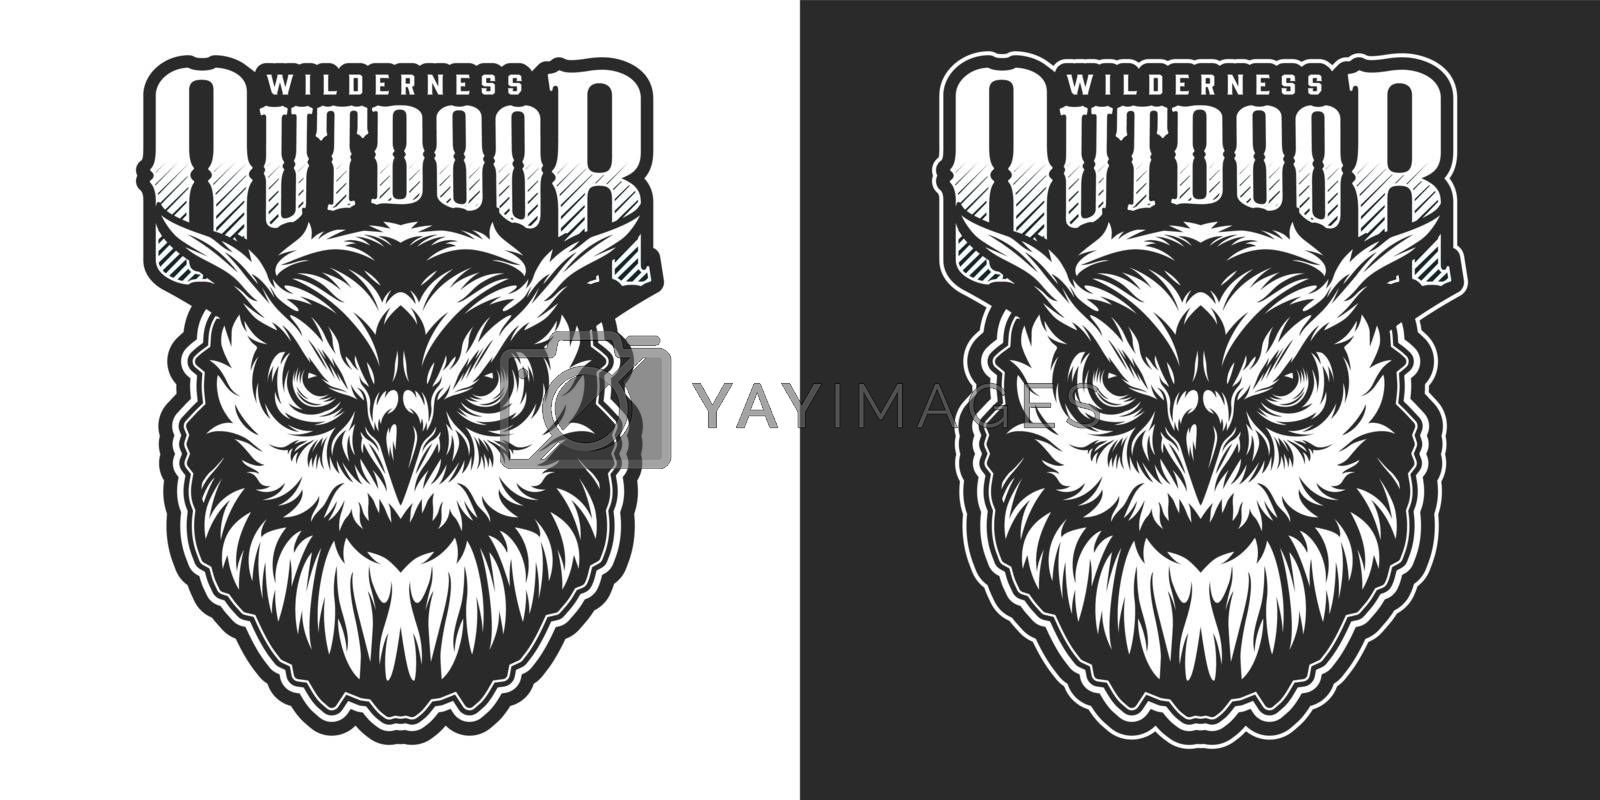 Vintage wild animal emblem with aggressive owl and inscription in monochrome style isolated vector illustration